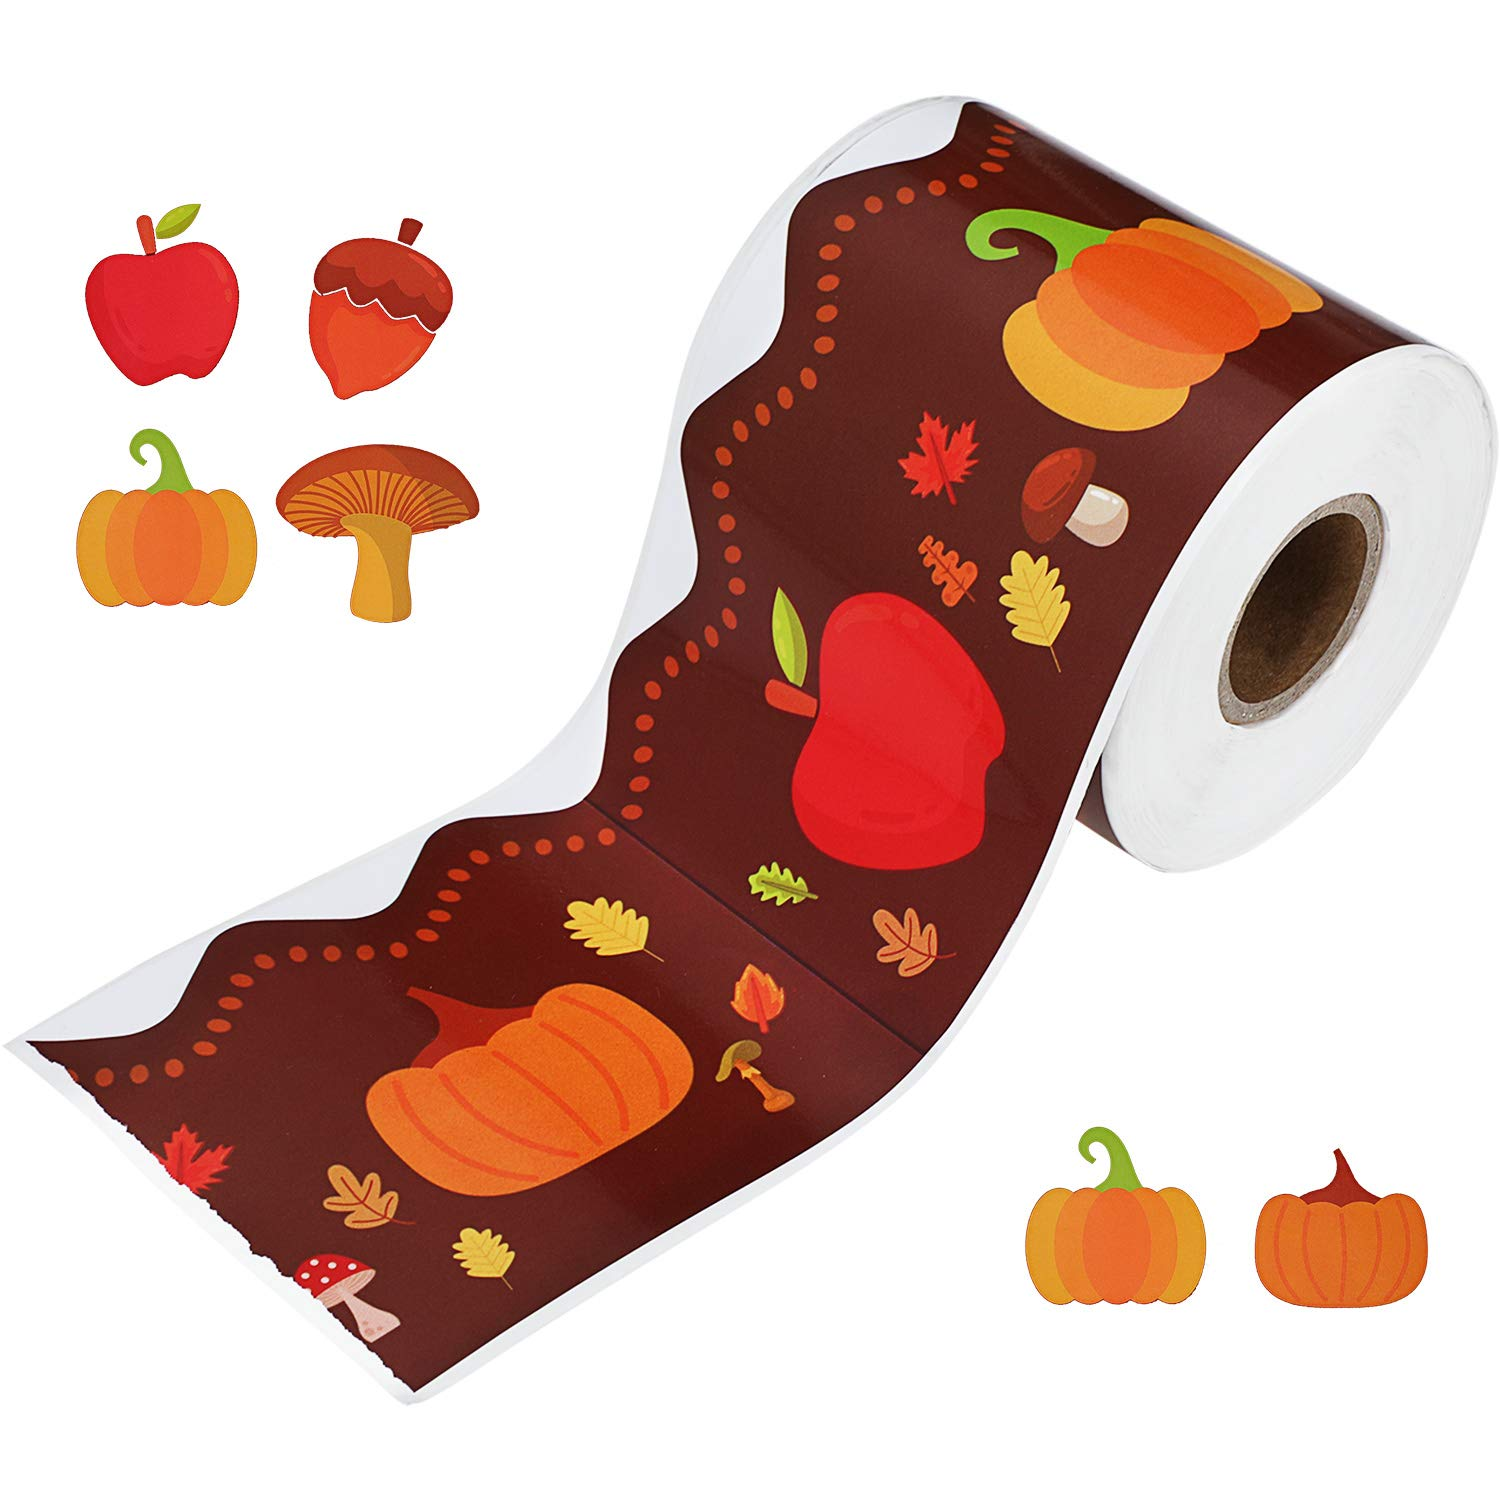 Holiday Bulletin Border Pumpkin Borders Autumn Leaves Border for Thanksgiving Decoration Halloween Party, 49 Feet Long by Outus